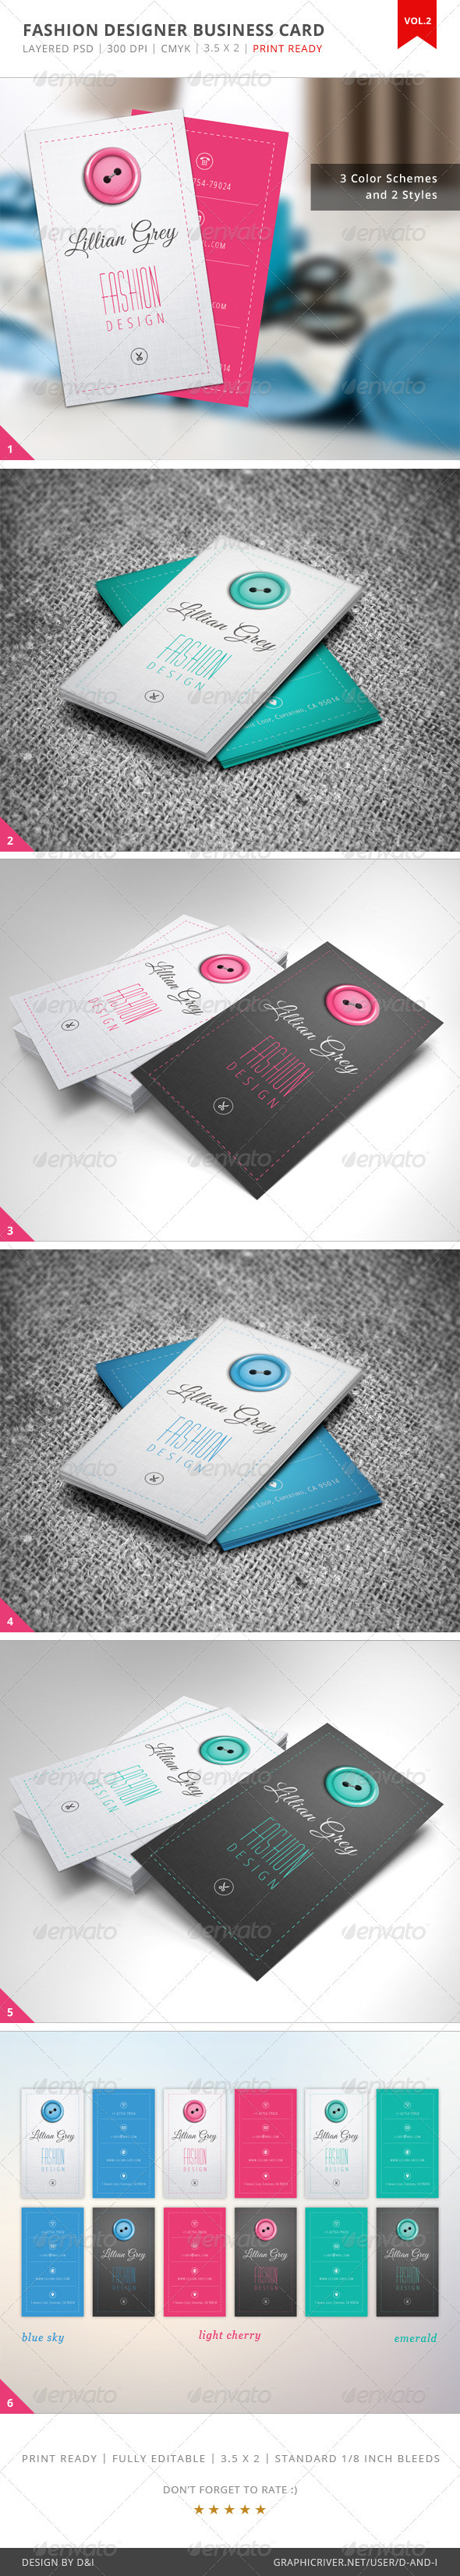 Fashion Designer Business Card - Vol.2 | Print templates, Business ...